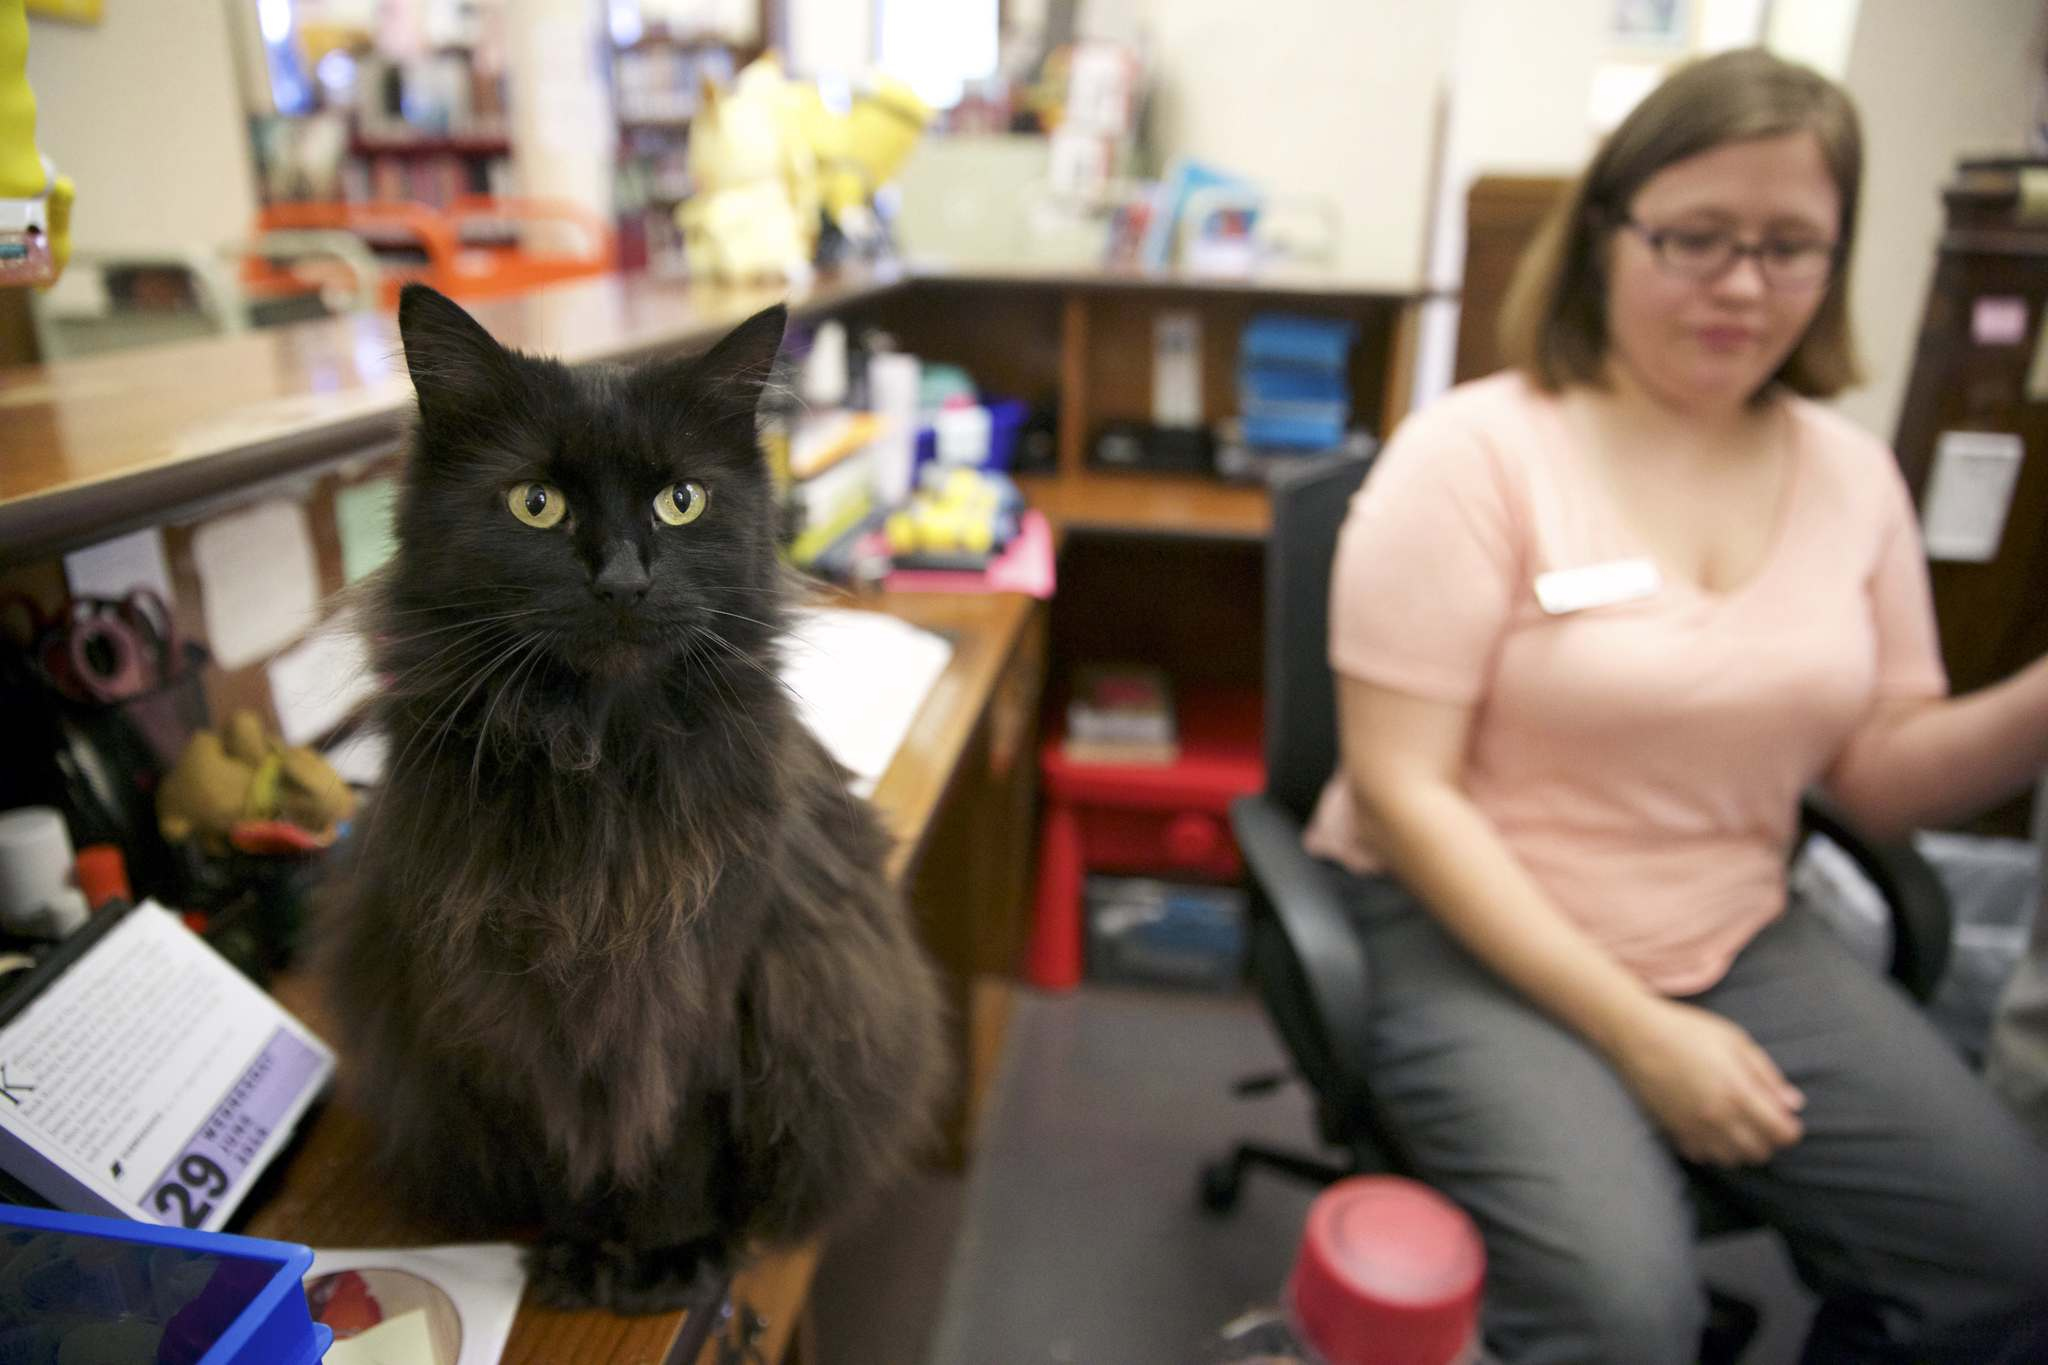 """Litchfield, Ill., Public Library has the state's last known library cat, a black long-haired """"diva"""" named Stacks, who sits on the circulation desk as clerk Sam Dagon does her work on June 29, 2016. (Steve Warmowski/Chicago Tribune/TNS)"""